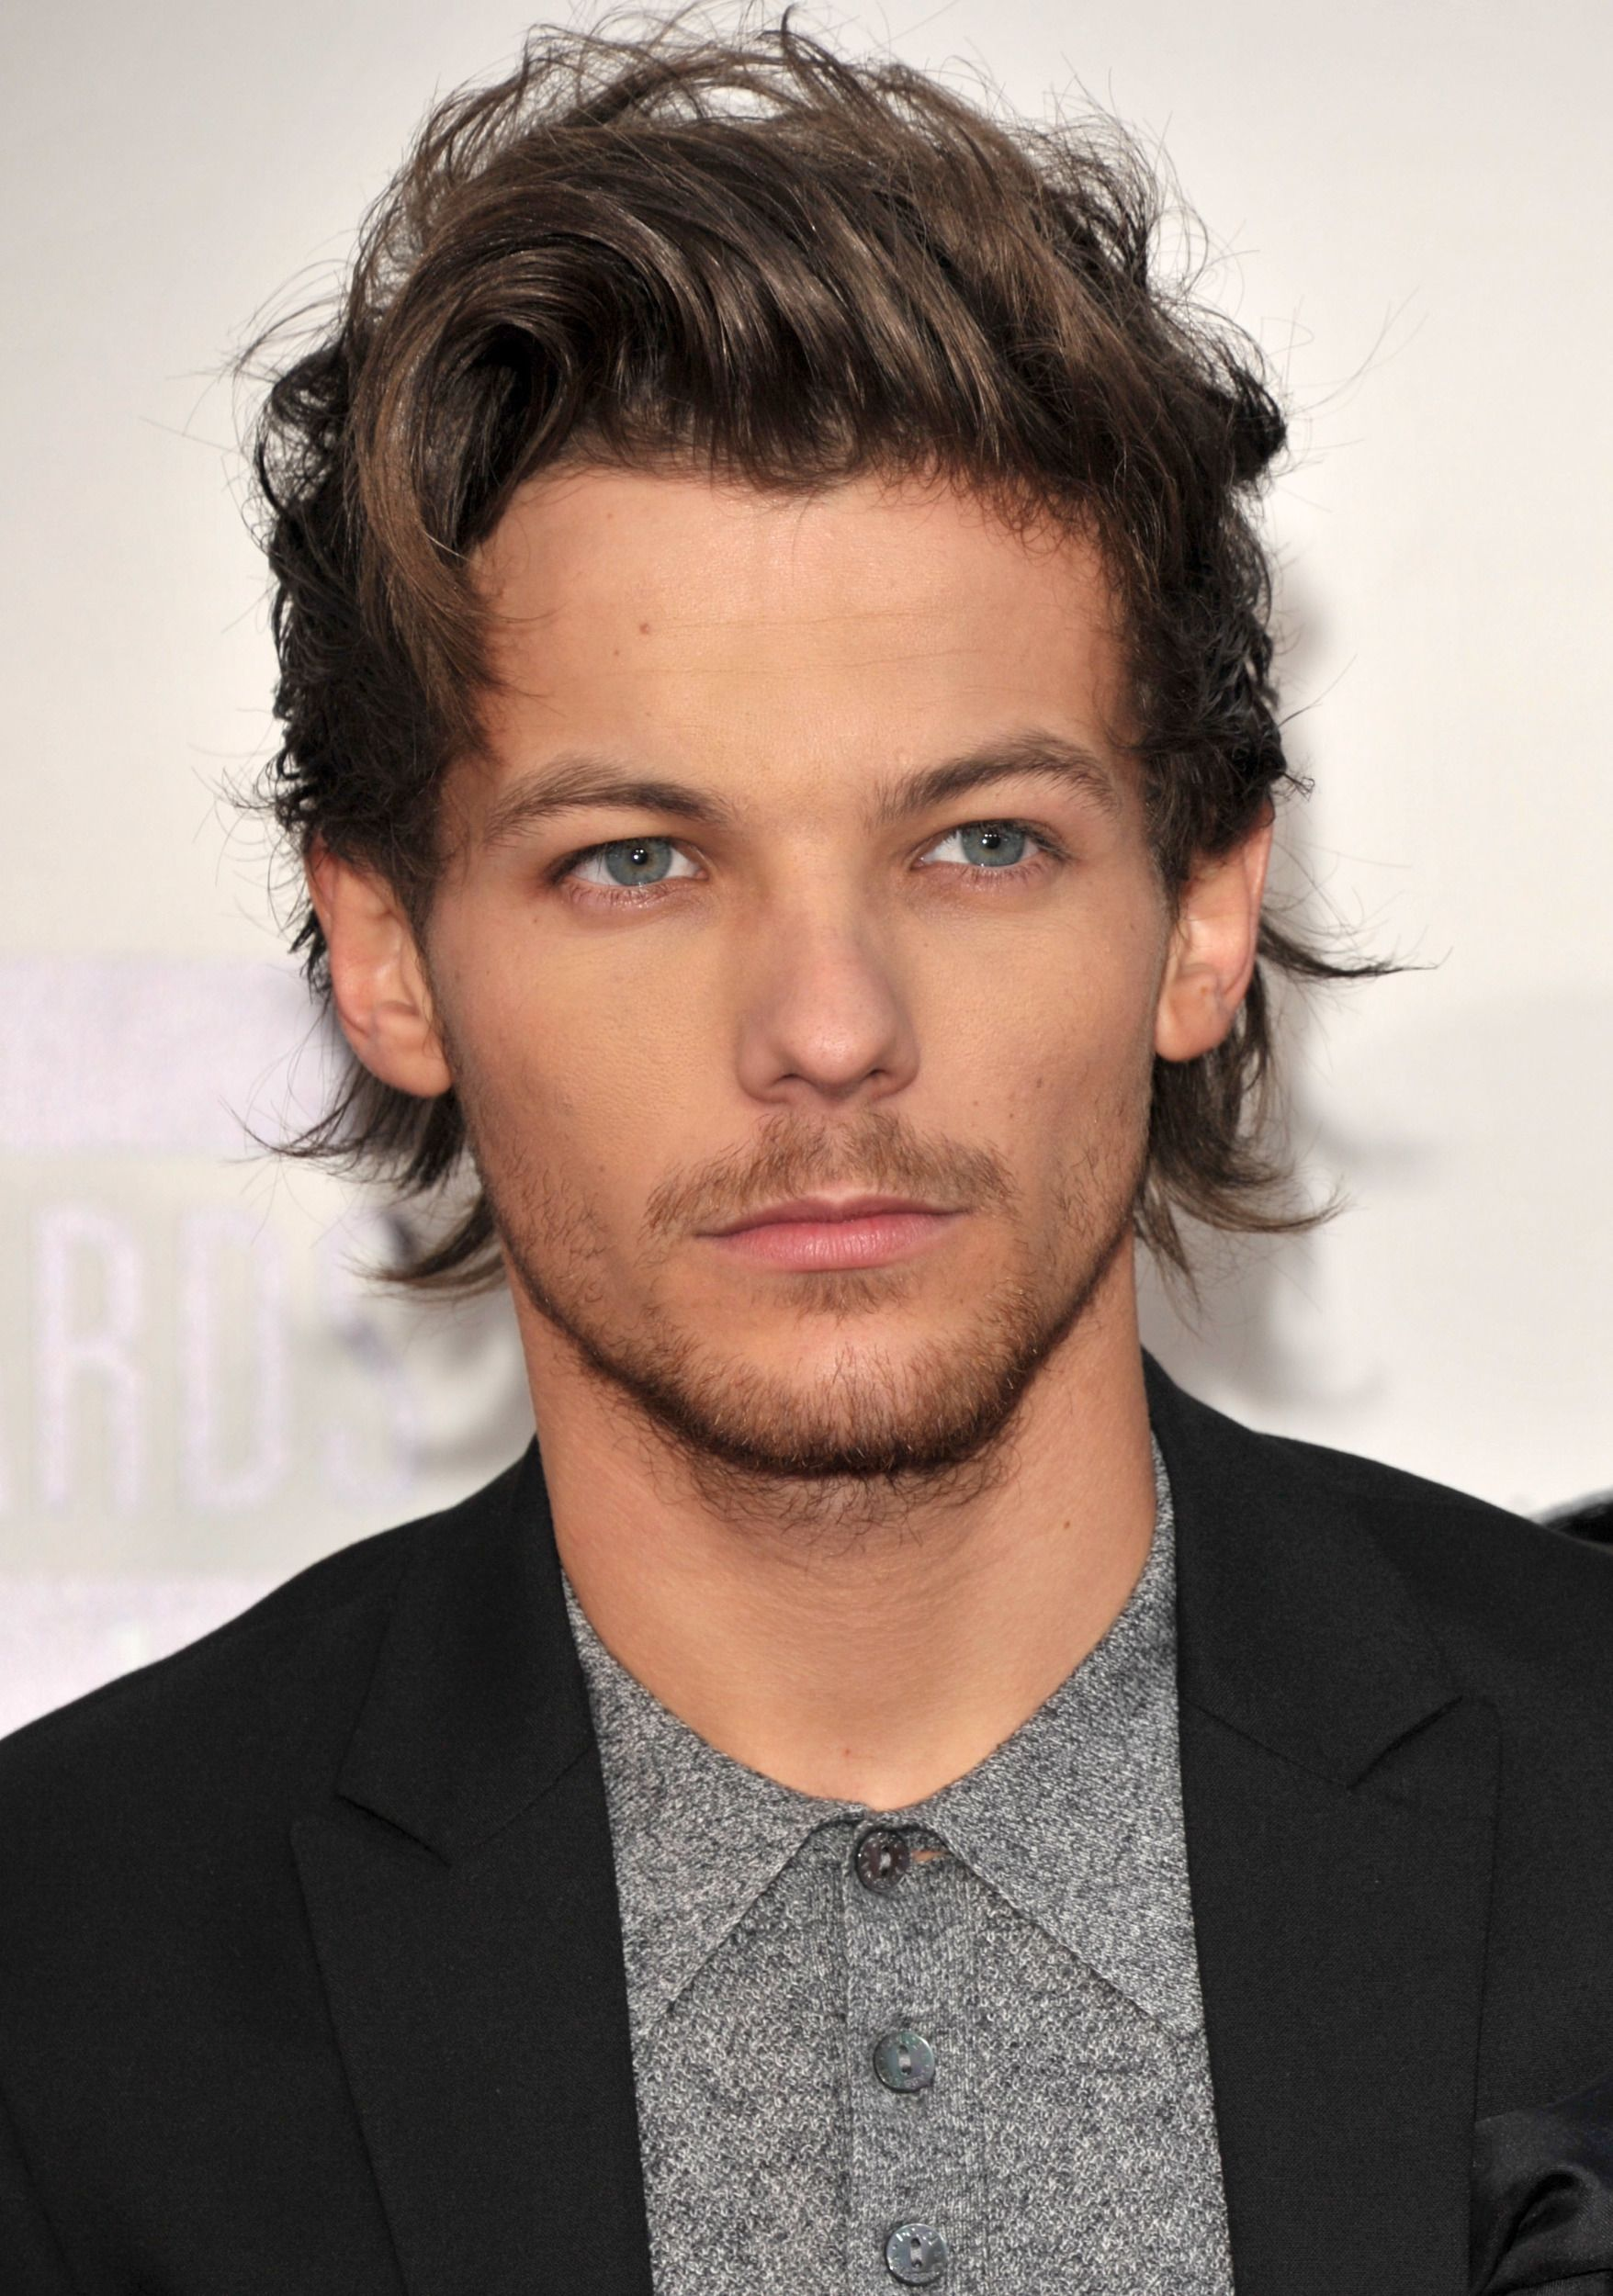 One Direction's Louis Tomlinson Calls Out Fan's Parents #onedirection2014 Louis Tomlinson has parted ways from his long-term girlfriend Eleanor Calder, just days after his bandmate Zayn Malik's relationship with Perrie Edwards was reportedly hanging in the balance. Description from tsquirrel.com. I searched for this on bing.com/images #onedirection2014